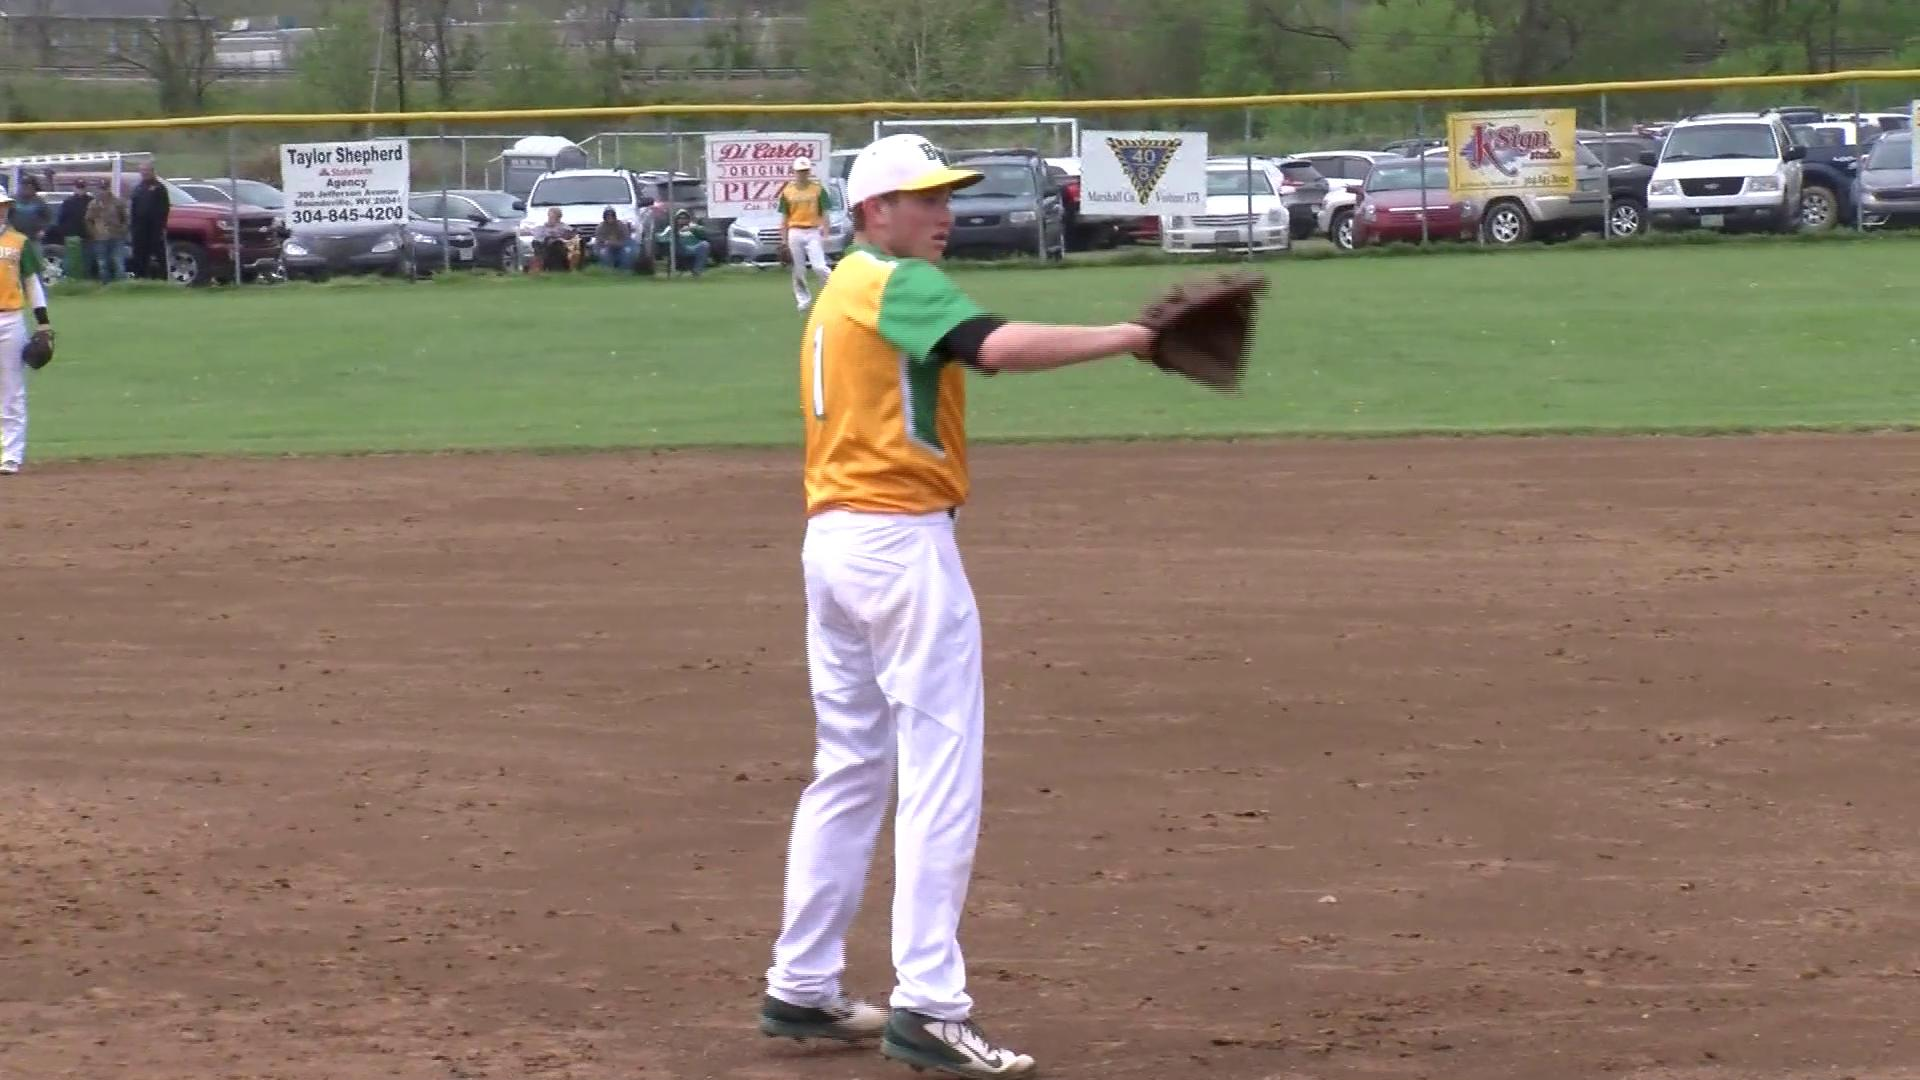 4.22.17 Highlights - Bishop Donahue advances to OVAC 1A baseball final